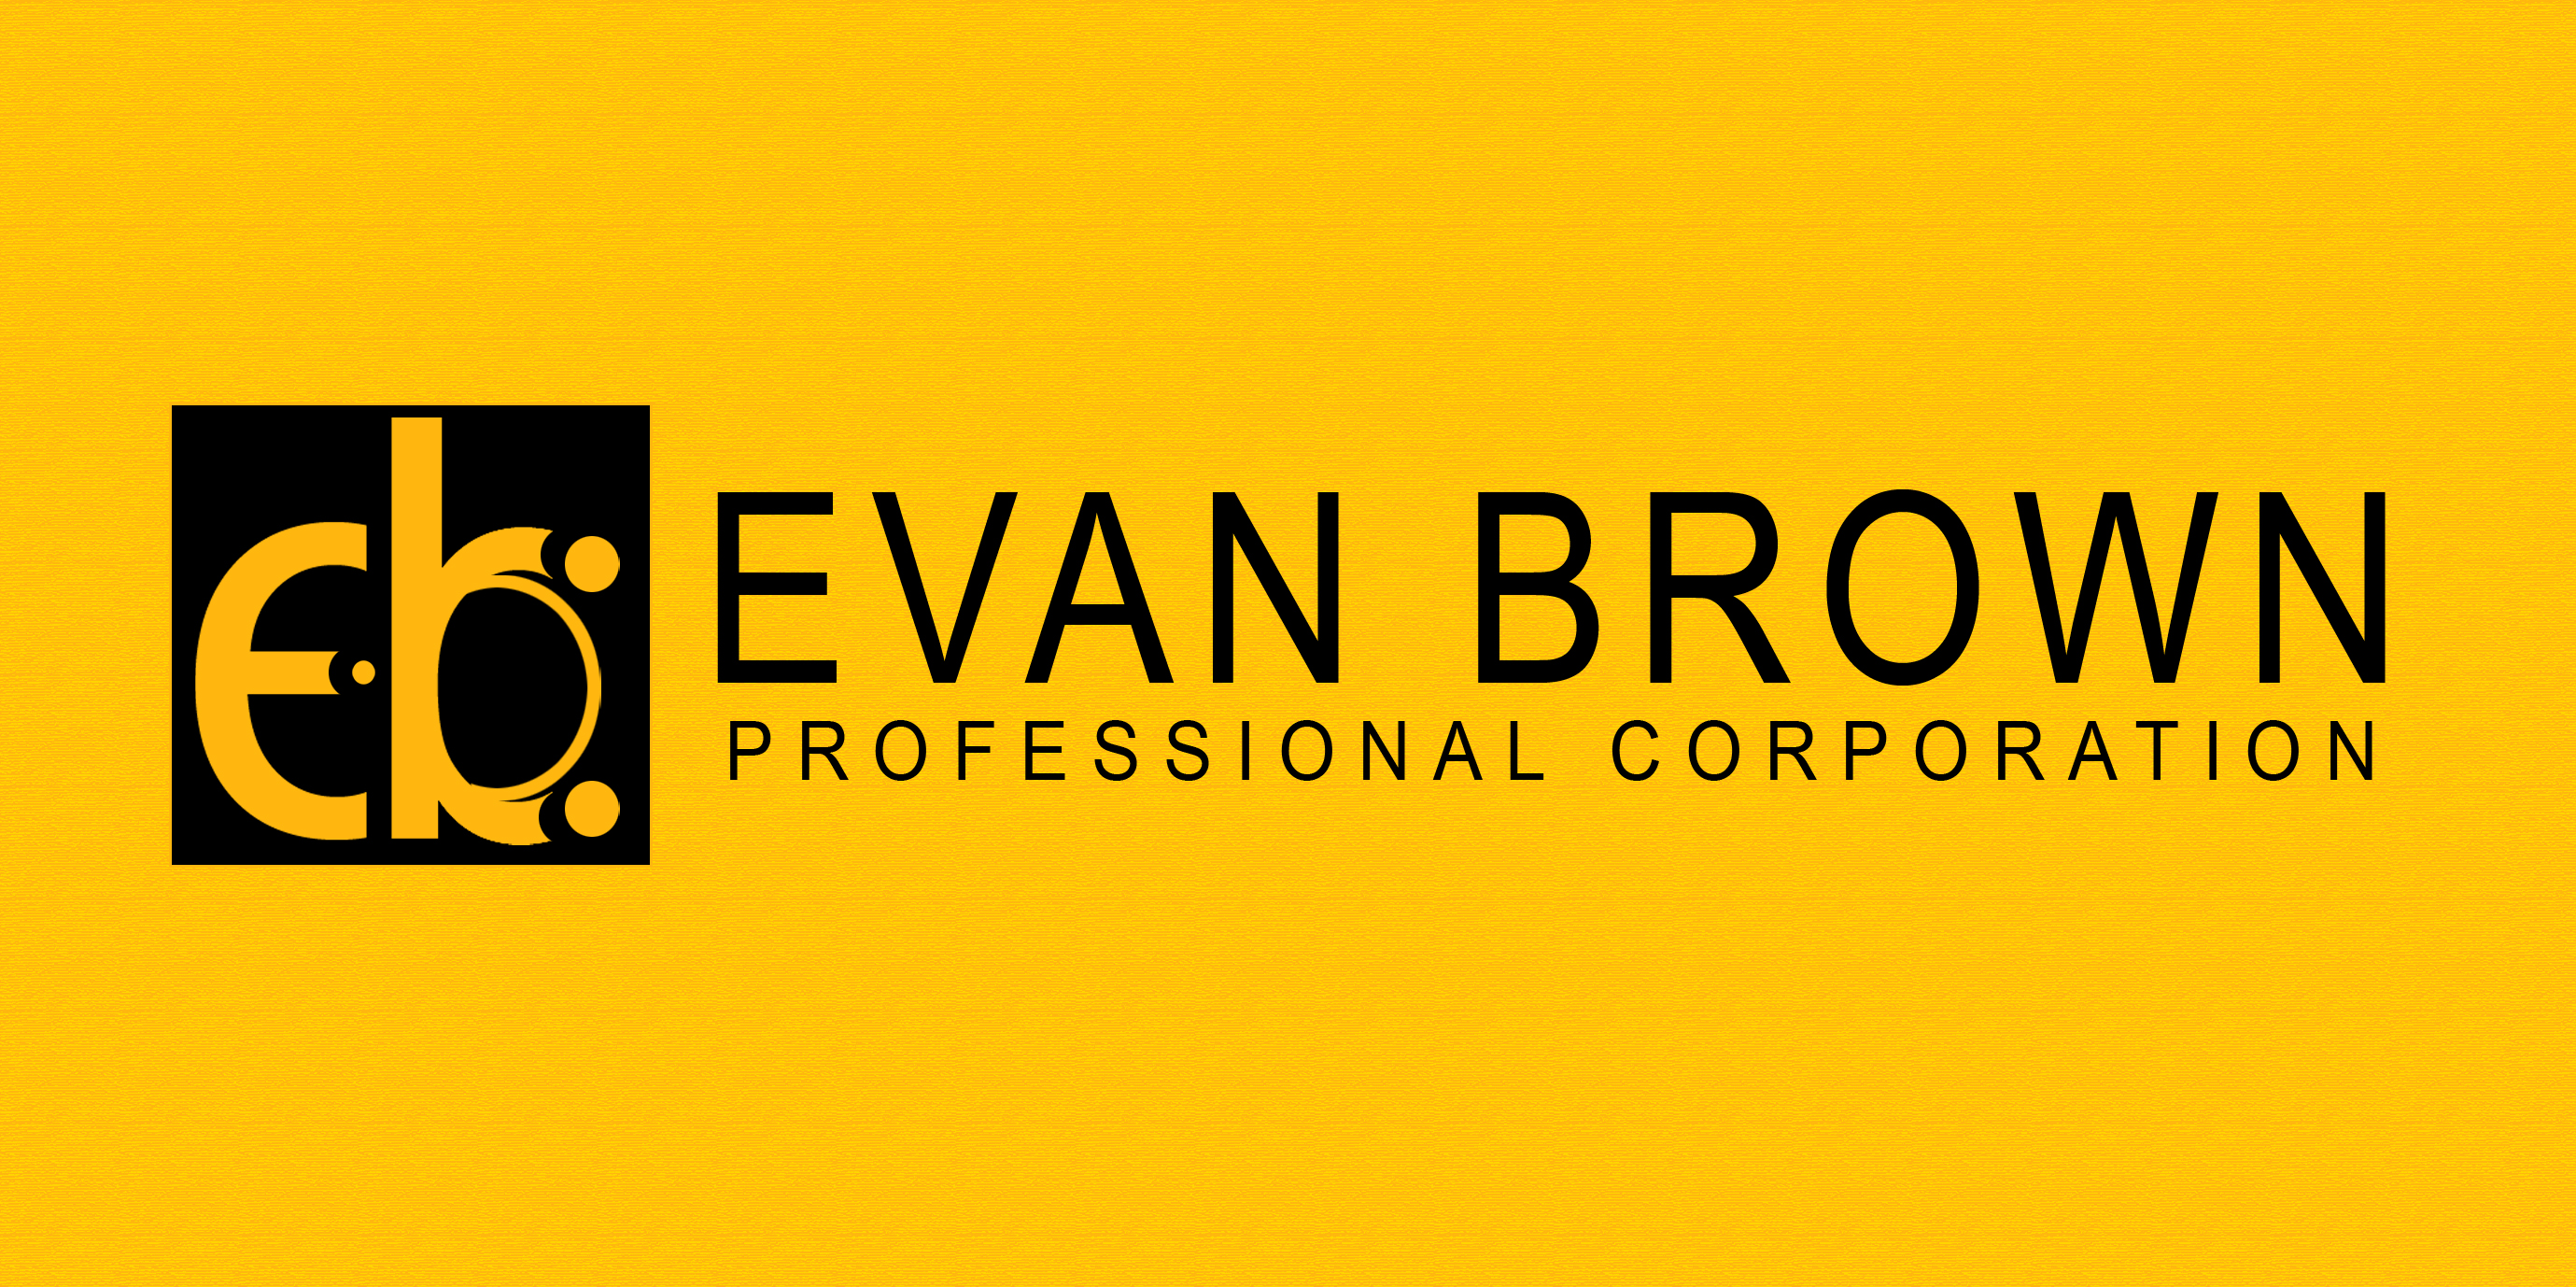 Logo Design by Vineeth K V - Entry No. 43 in the Logo Design Contest Inspiring Logo Design for Evan Brown Professional Corporation.